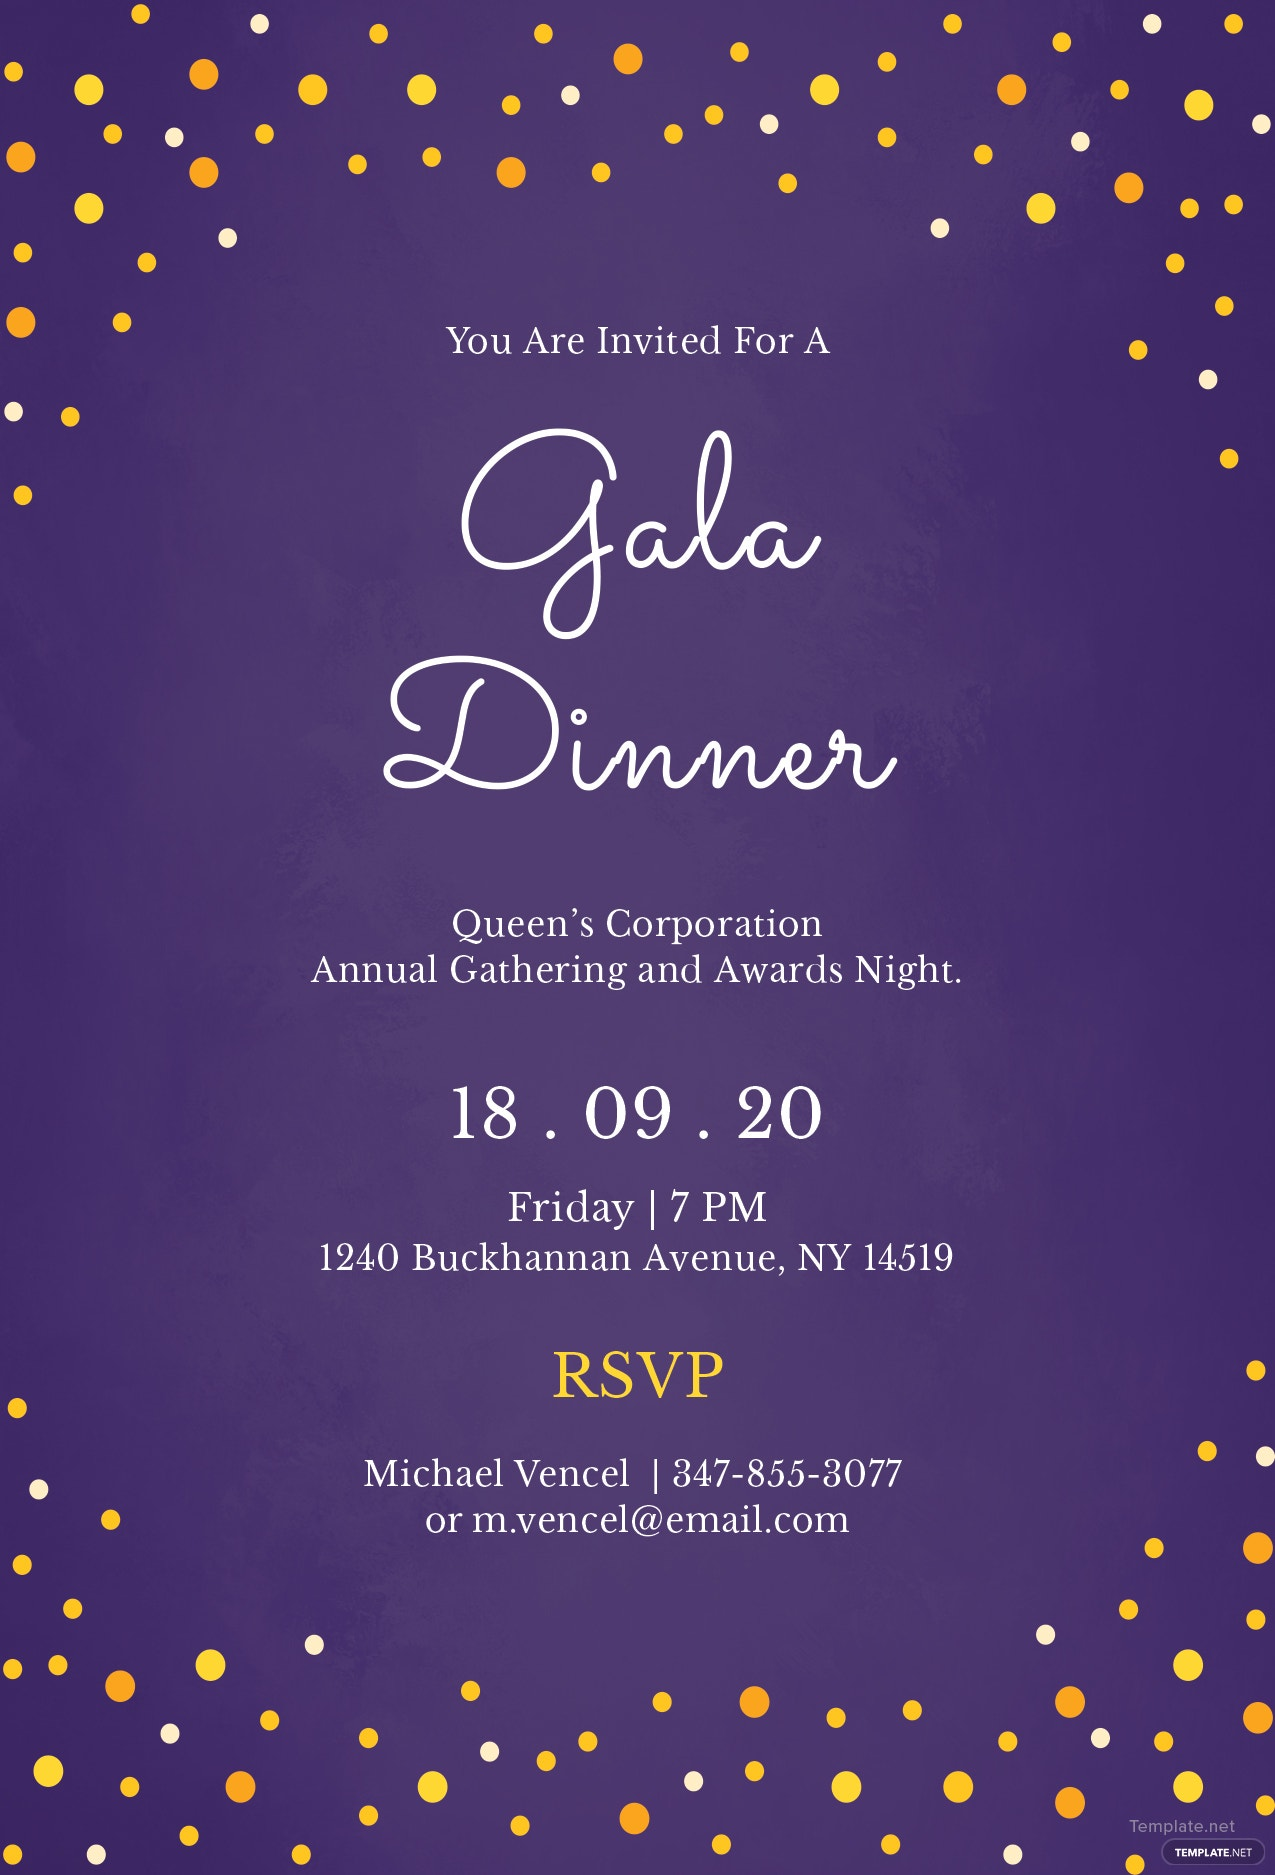 Free Gala Dinner Night Invitation Template In Illustrator